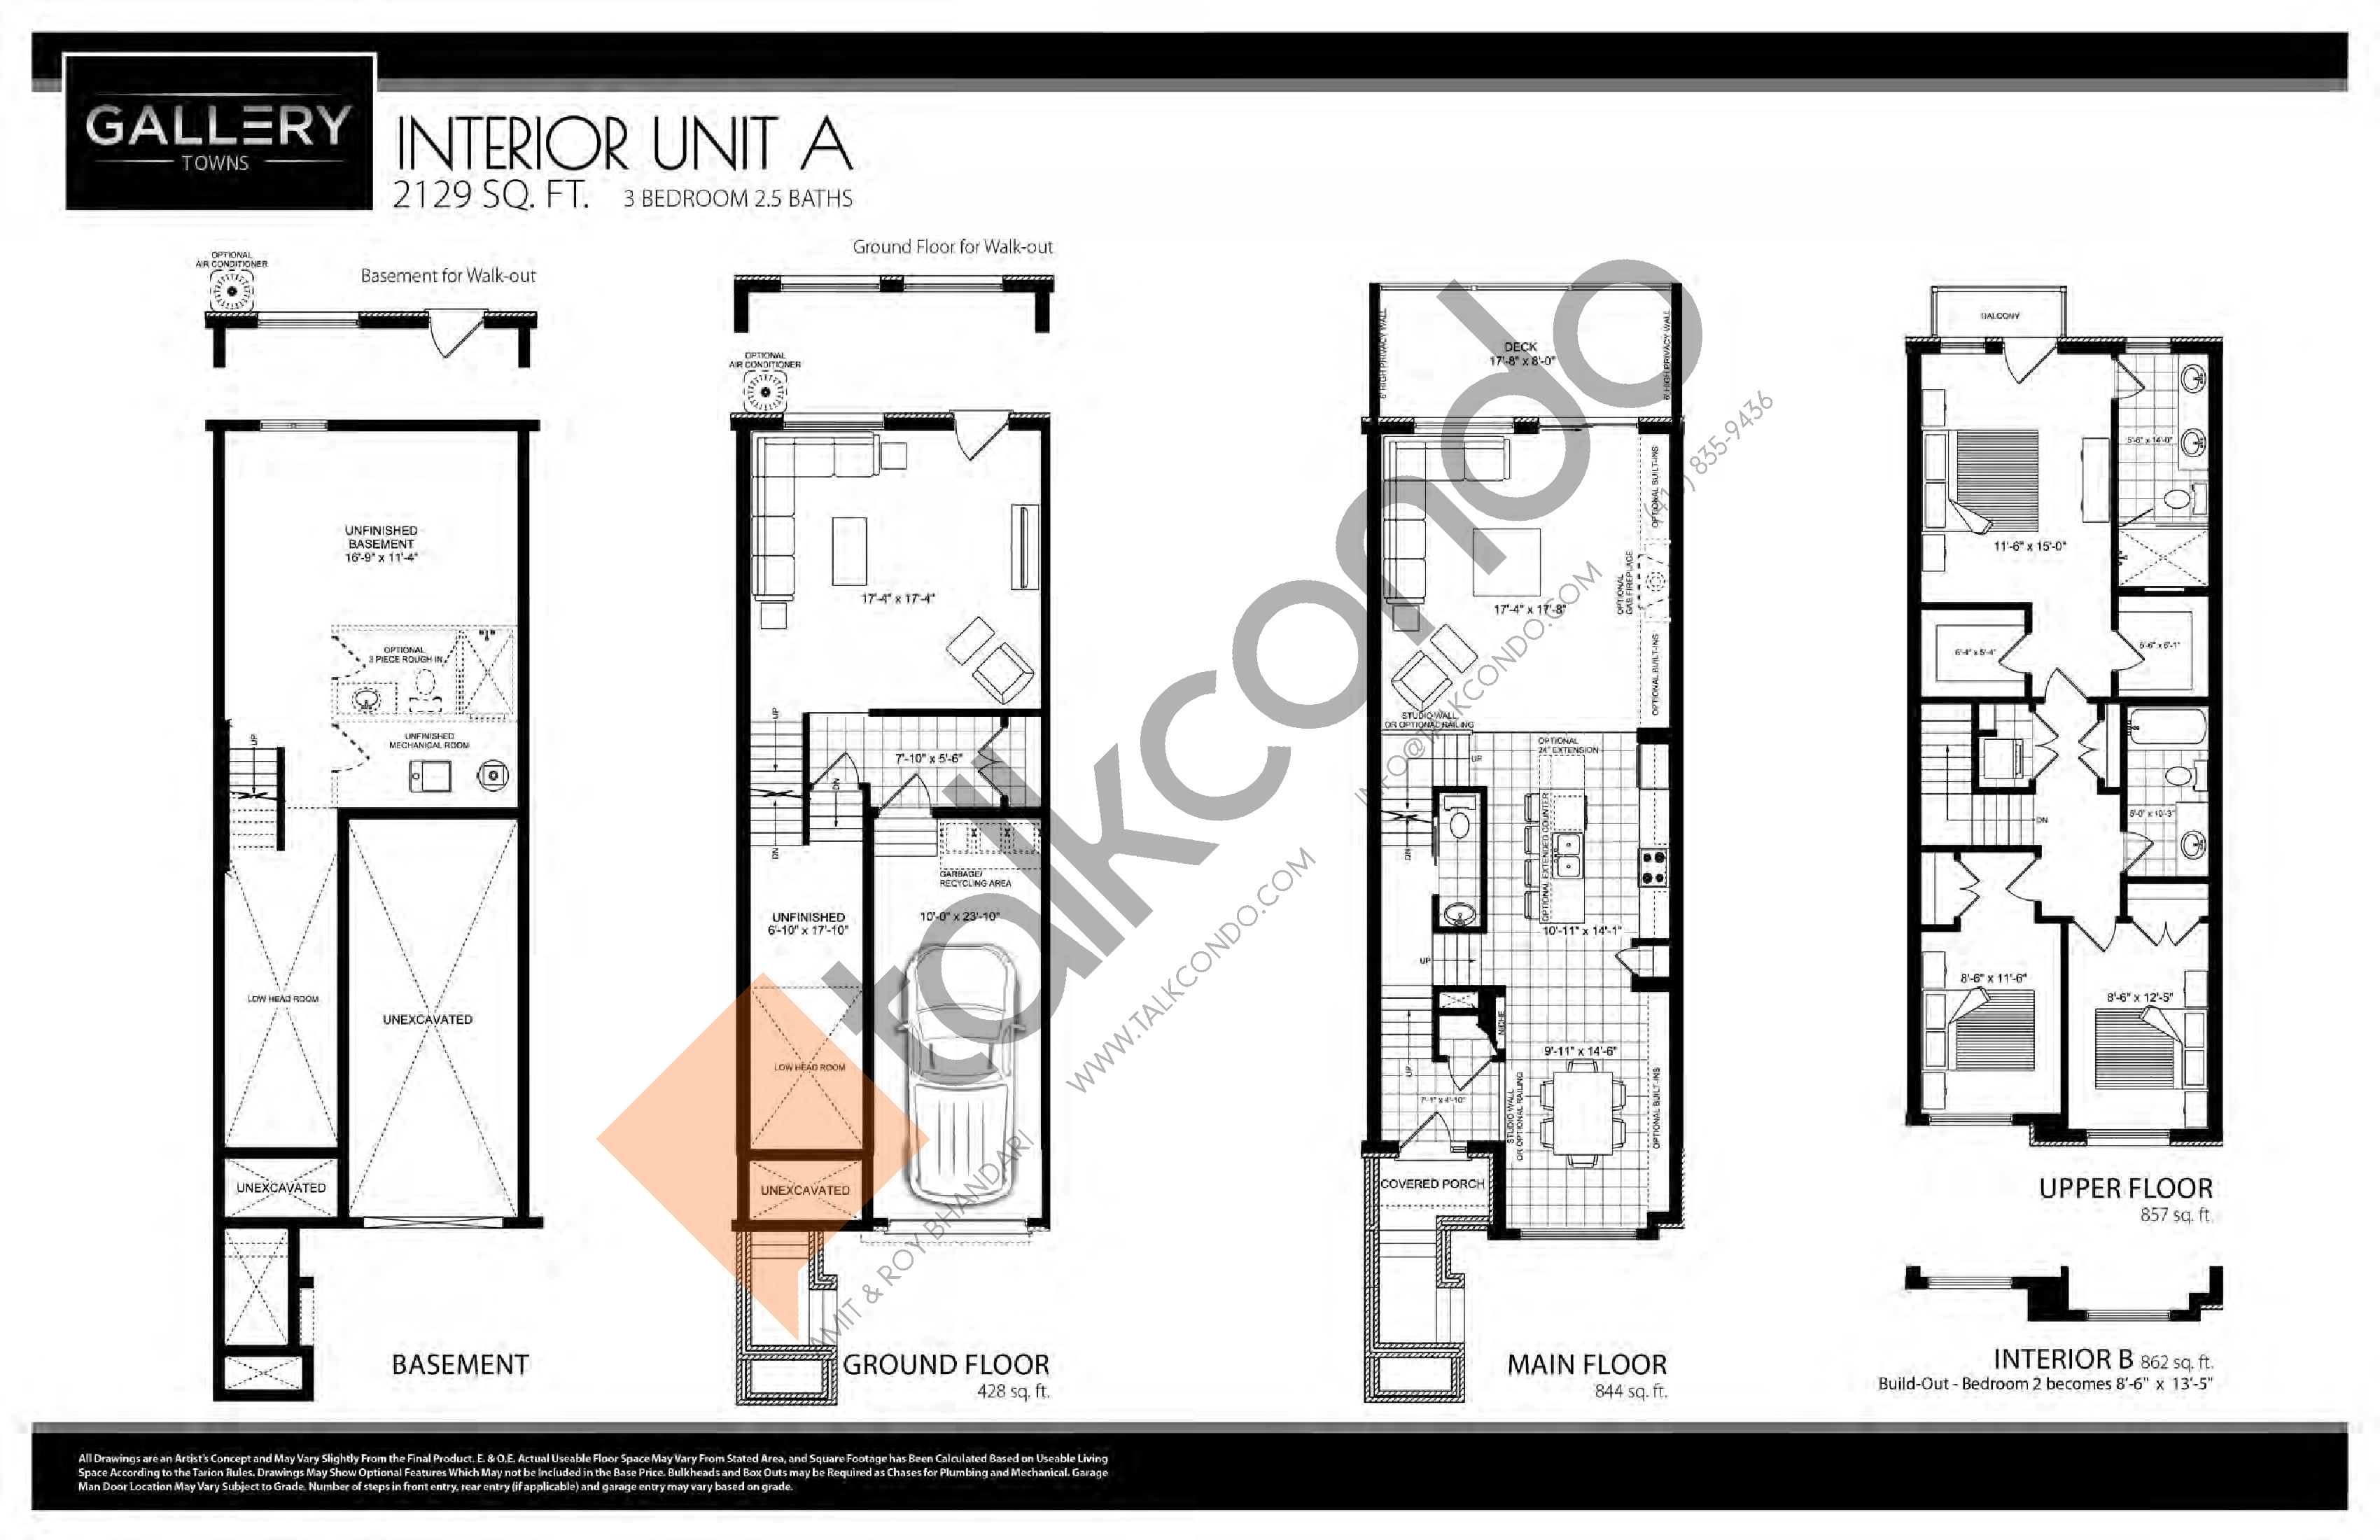 Gallery Towns  Interior Unit A  9 sq.ft.  9 bedrooms